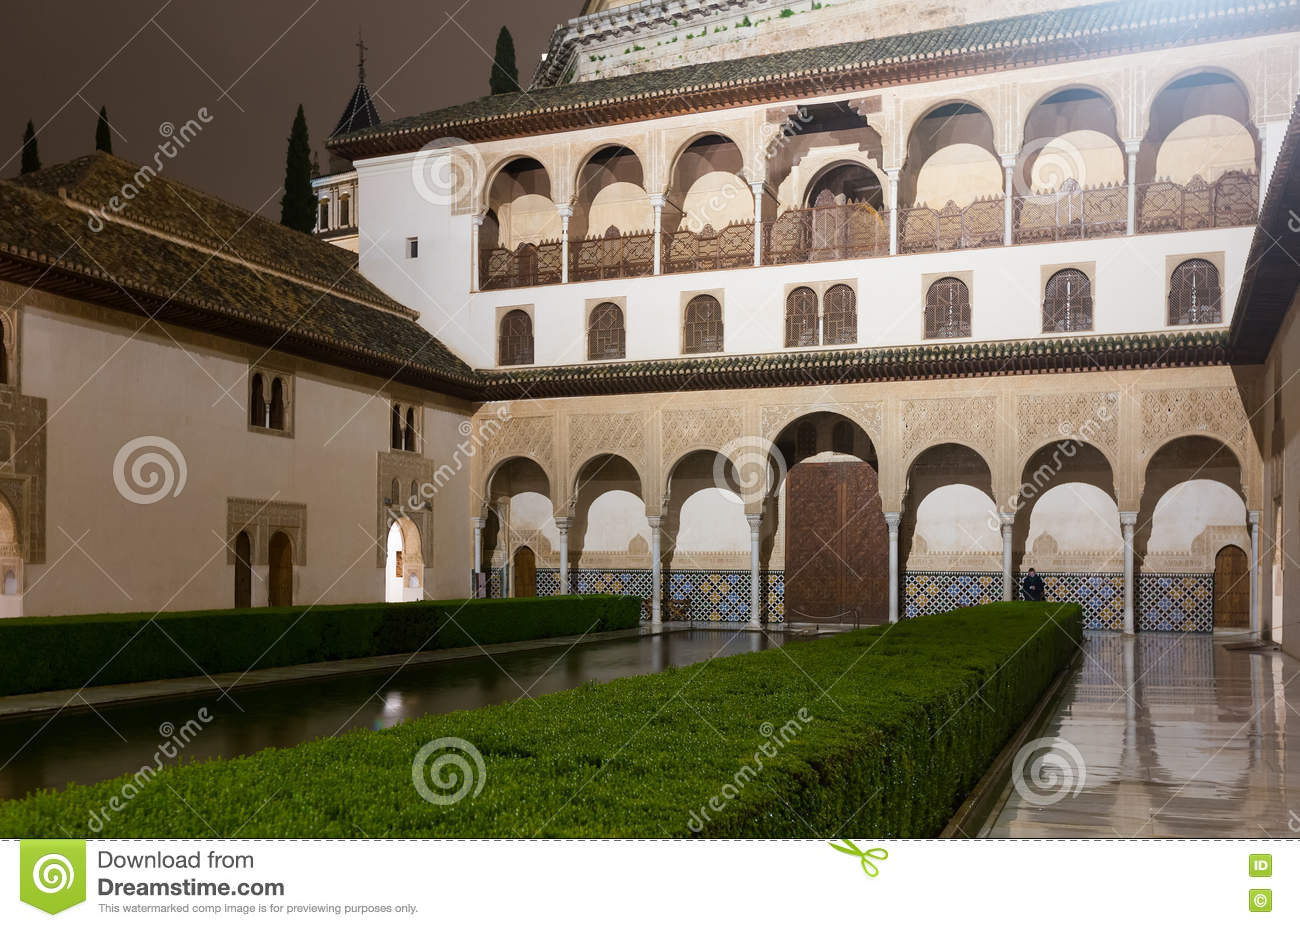 Court Of The Myrtles (Patio De Los Arrayanes), Alhambra Stock Photo - Image: ...